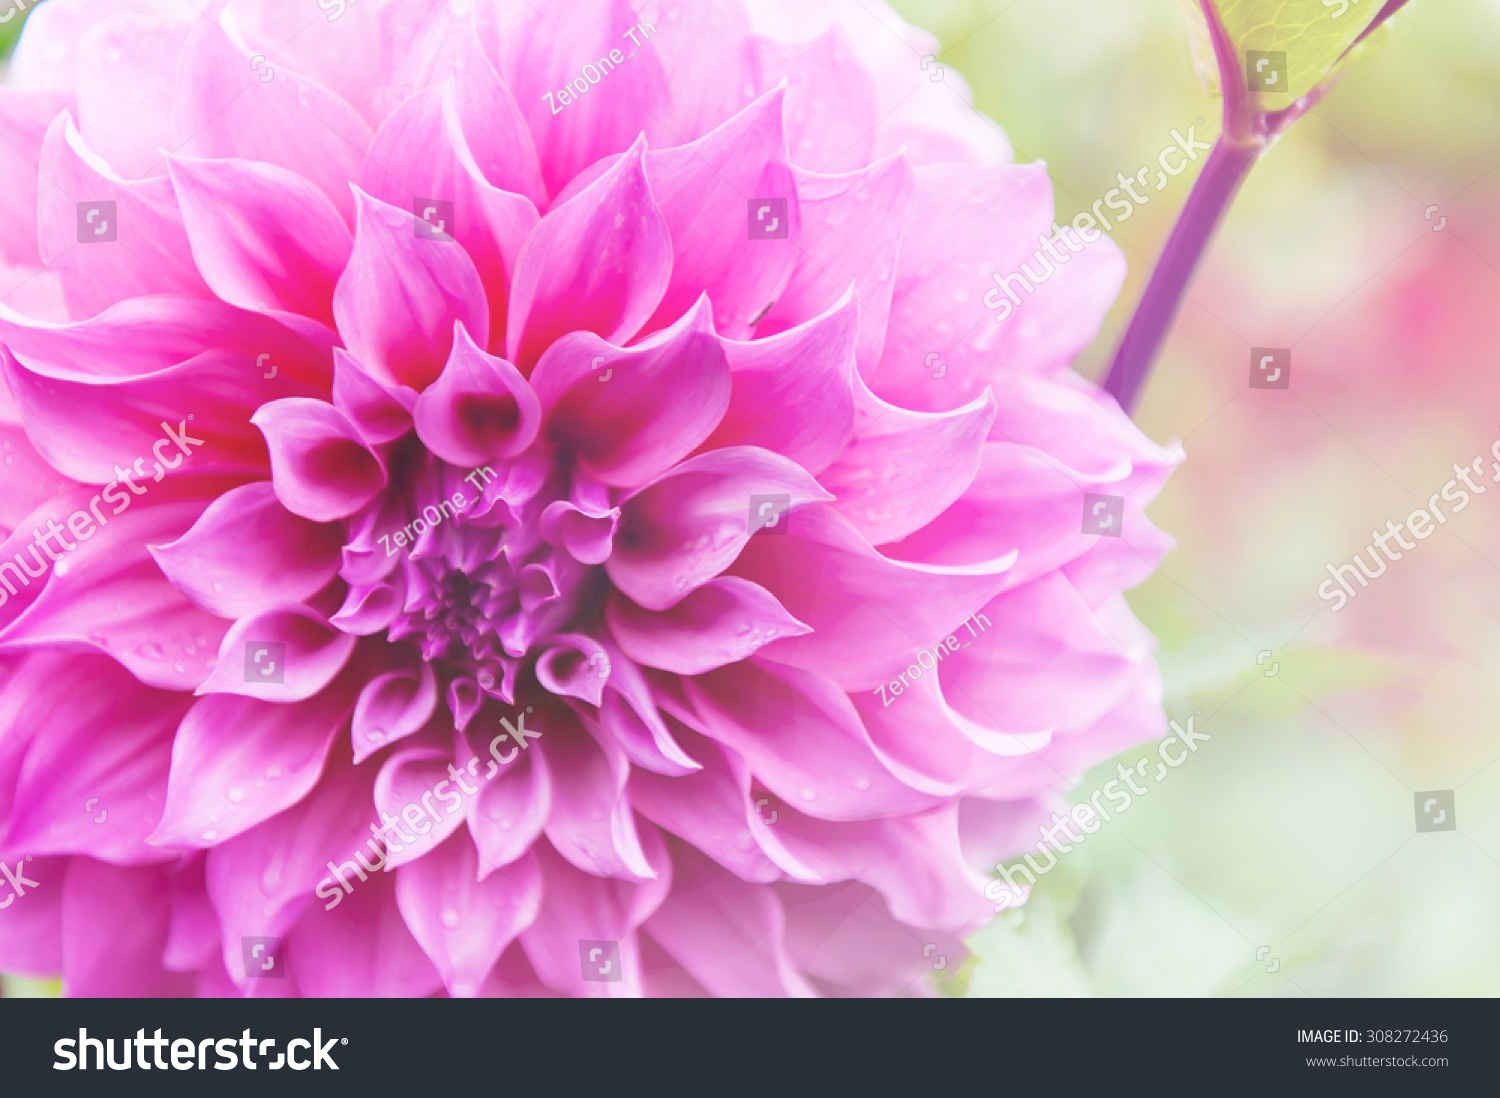 Flower background romantic flowers beautiful flowers stock photo flower background romantic flowers beautiful flowers made with sweet soft style color filters izmirmasajfo